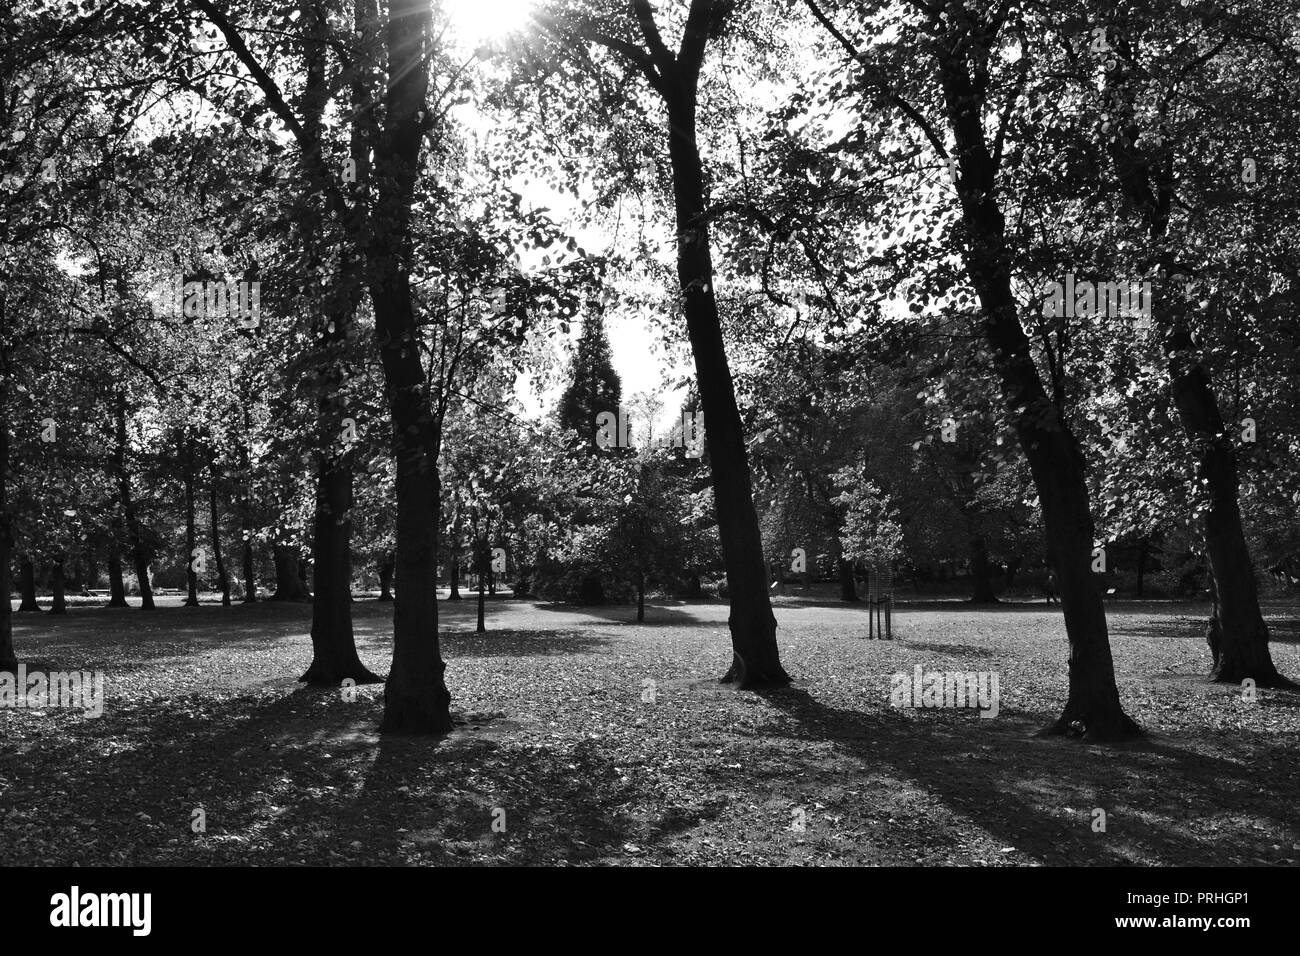 Beautiful, naturally lit black and white photographs of Ropner Park, a traditional Victorian public park in Stockton-on-Tees, UK at the start of Autumn. Stock Photo